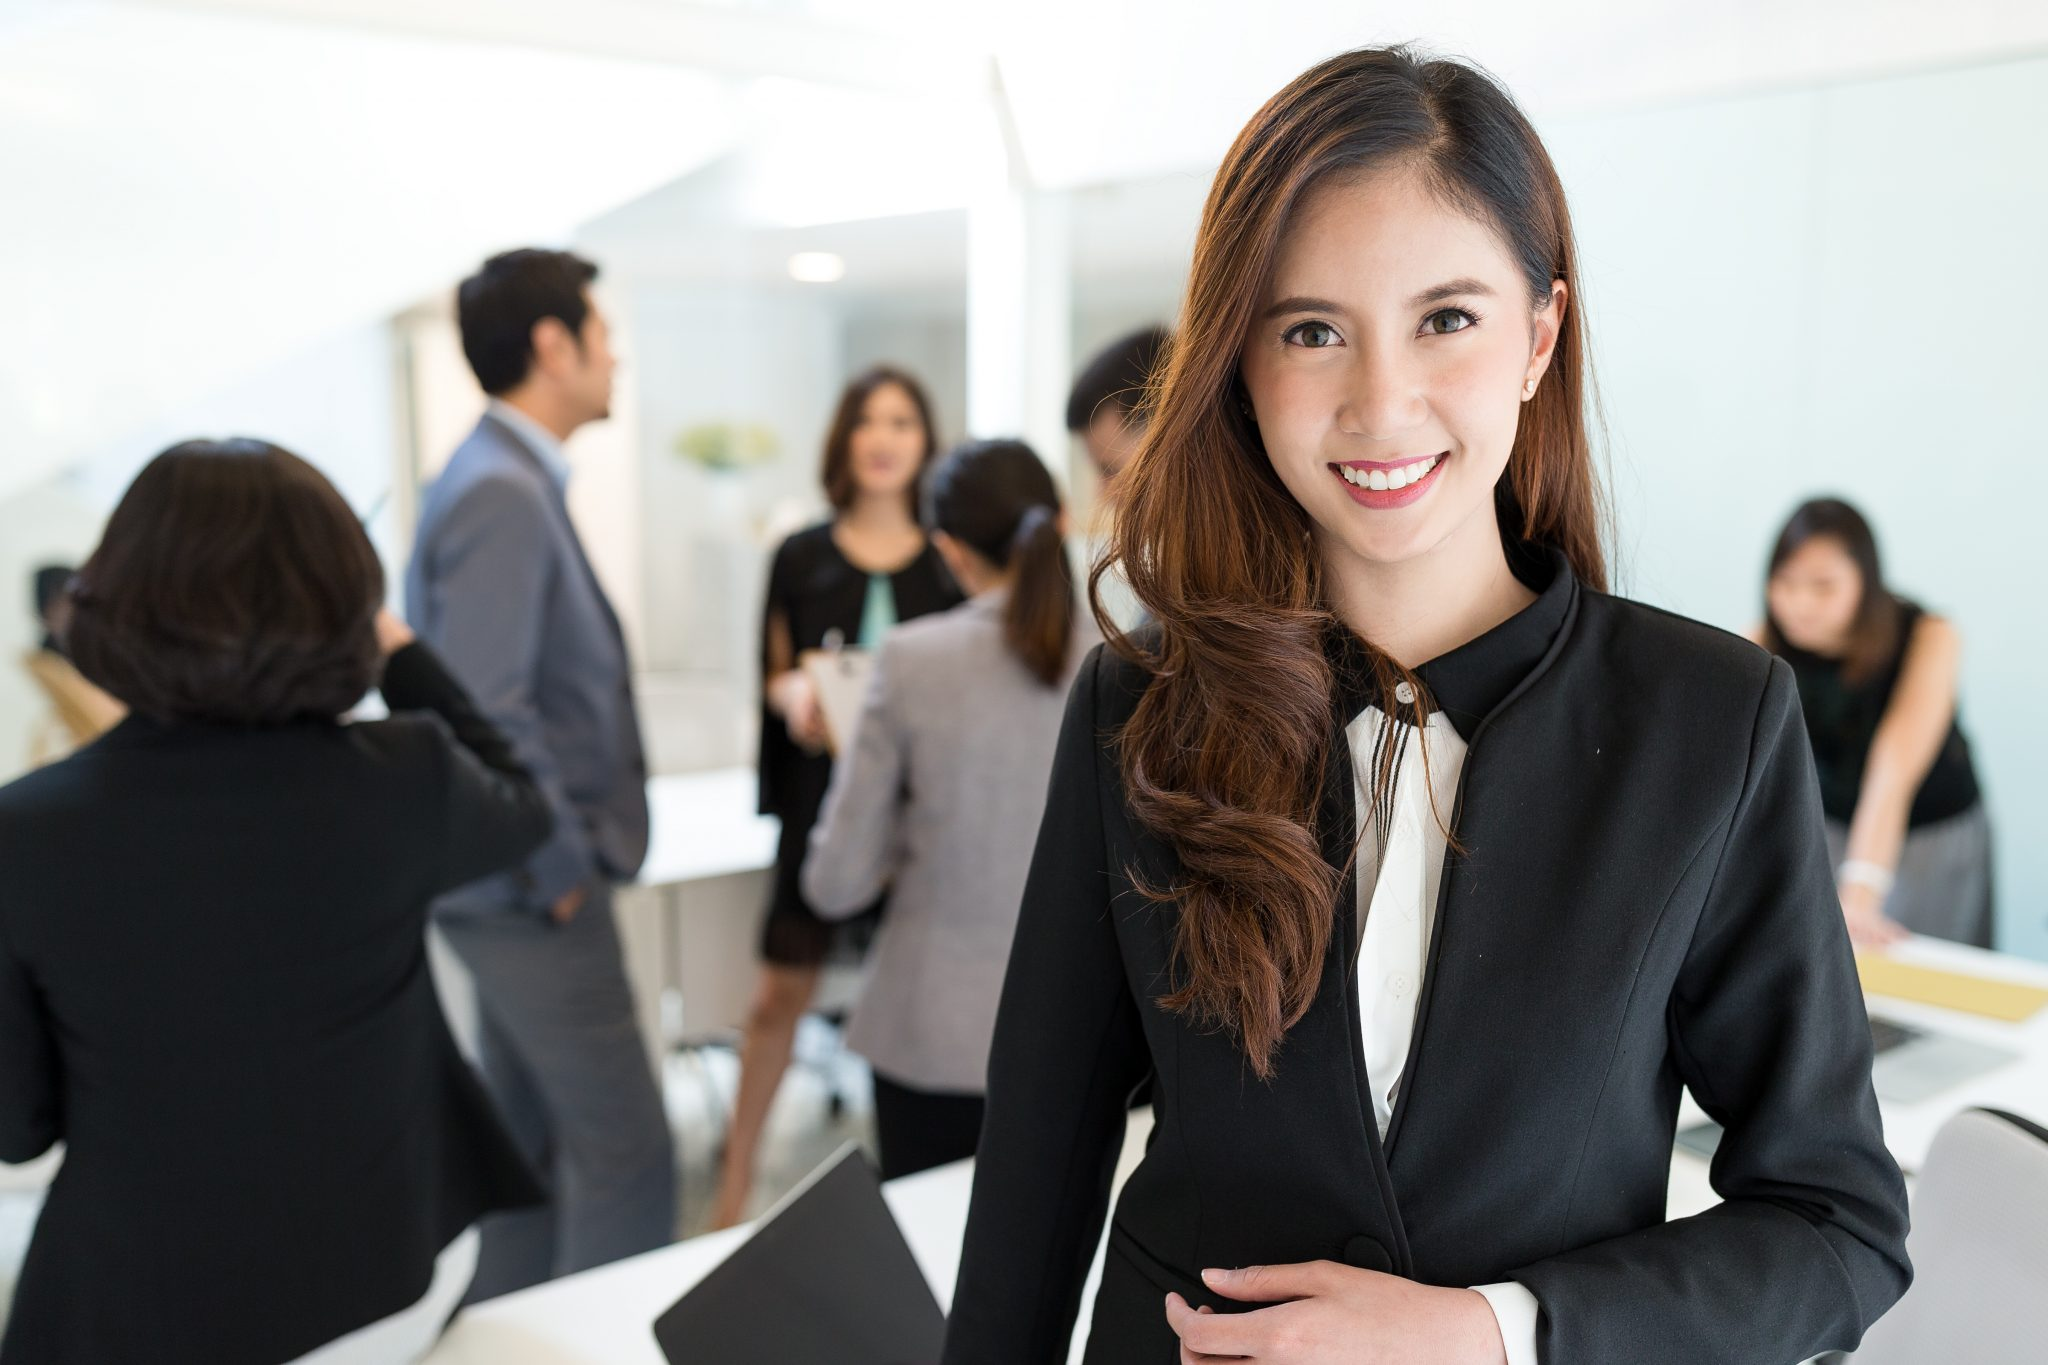 bigstock-Asian-young-business-leader-in-196723288